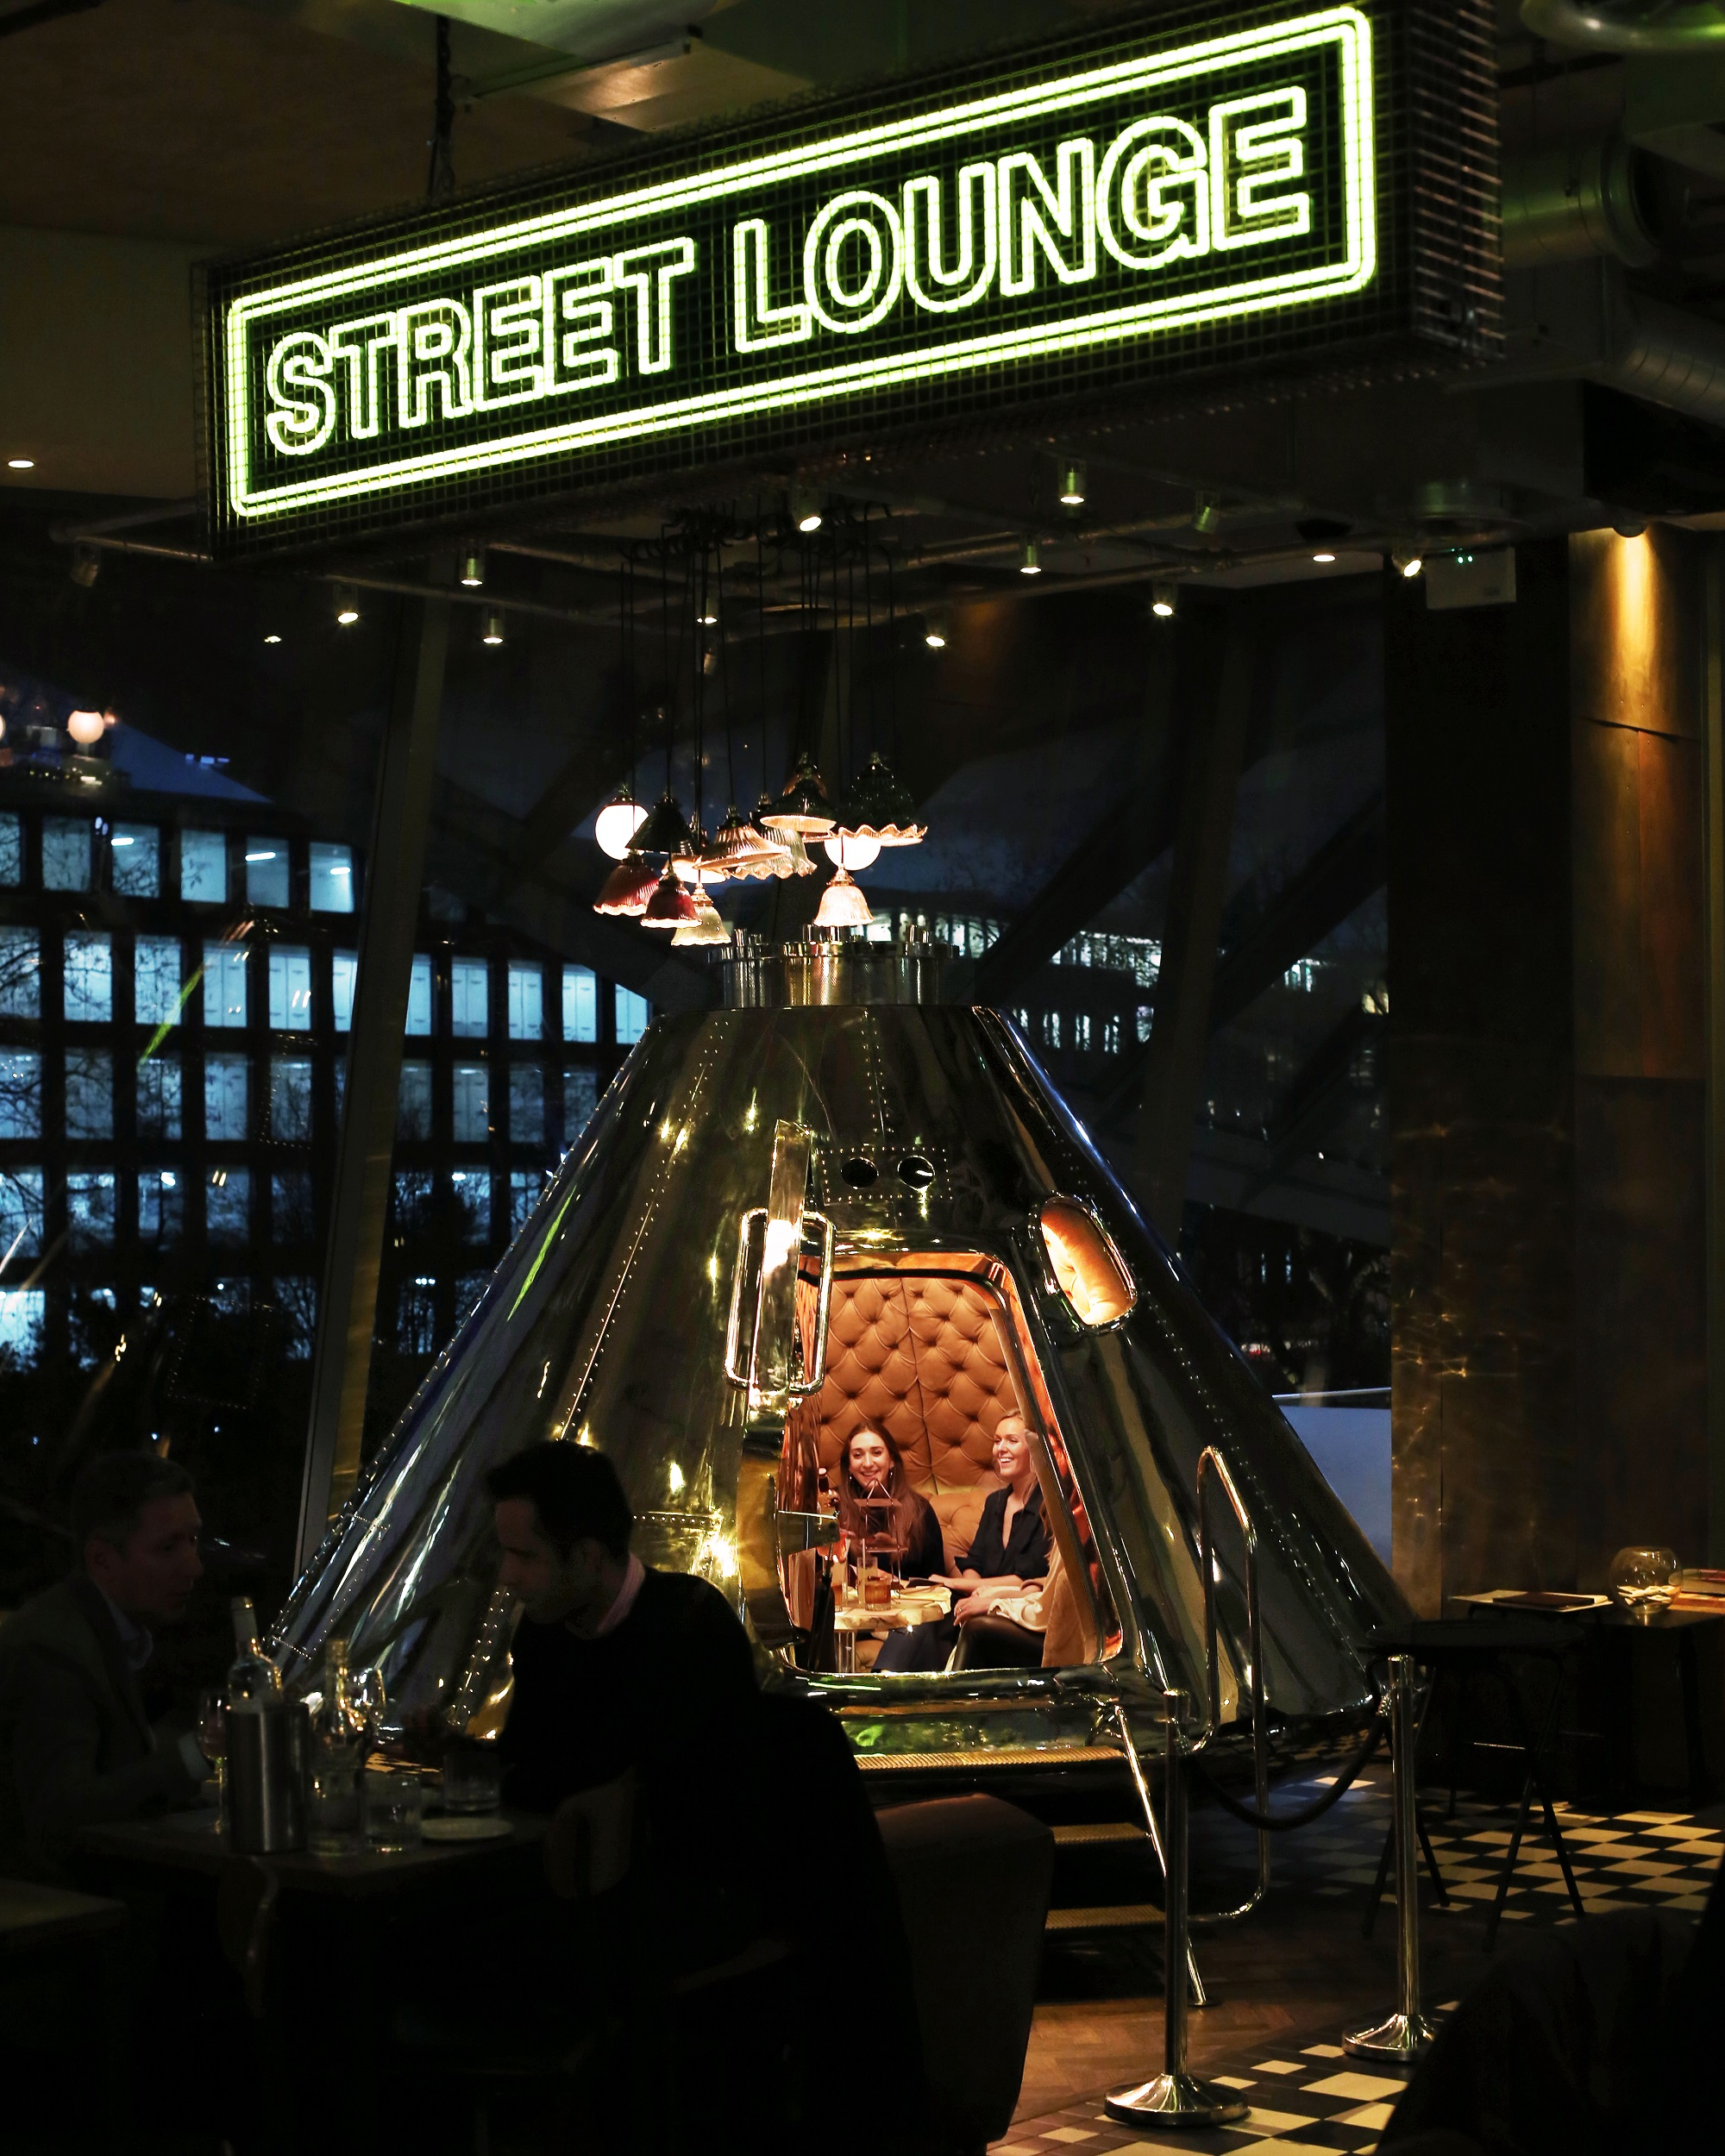 Street Lounge at Bread Street Kitchen